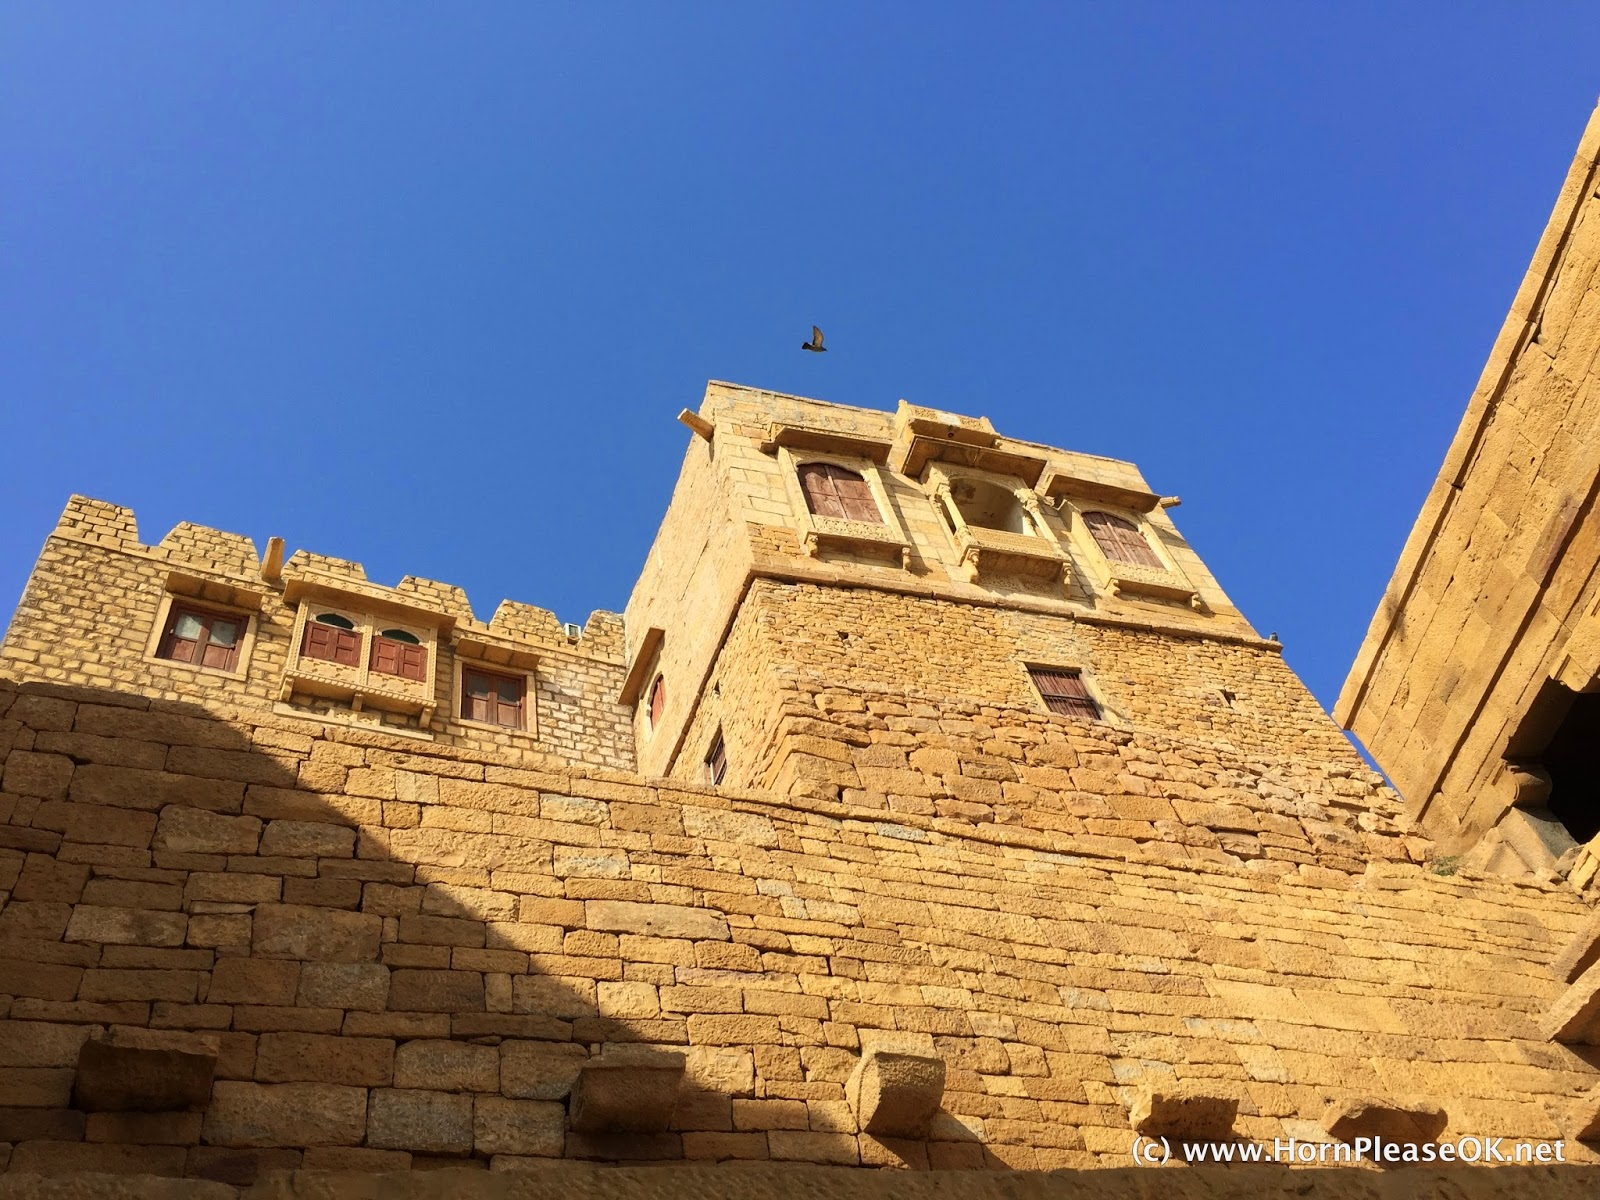 The Golden Fort at Jaisalmer made out of yellow sandstone